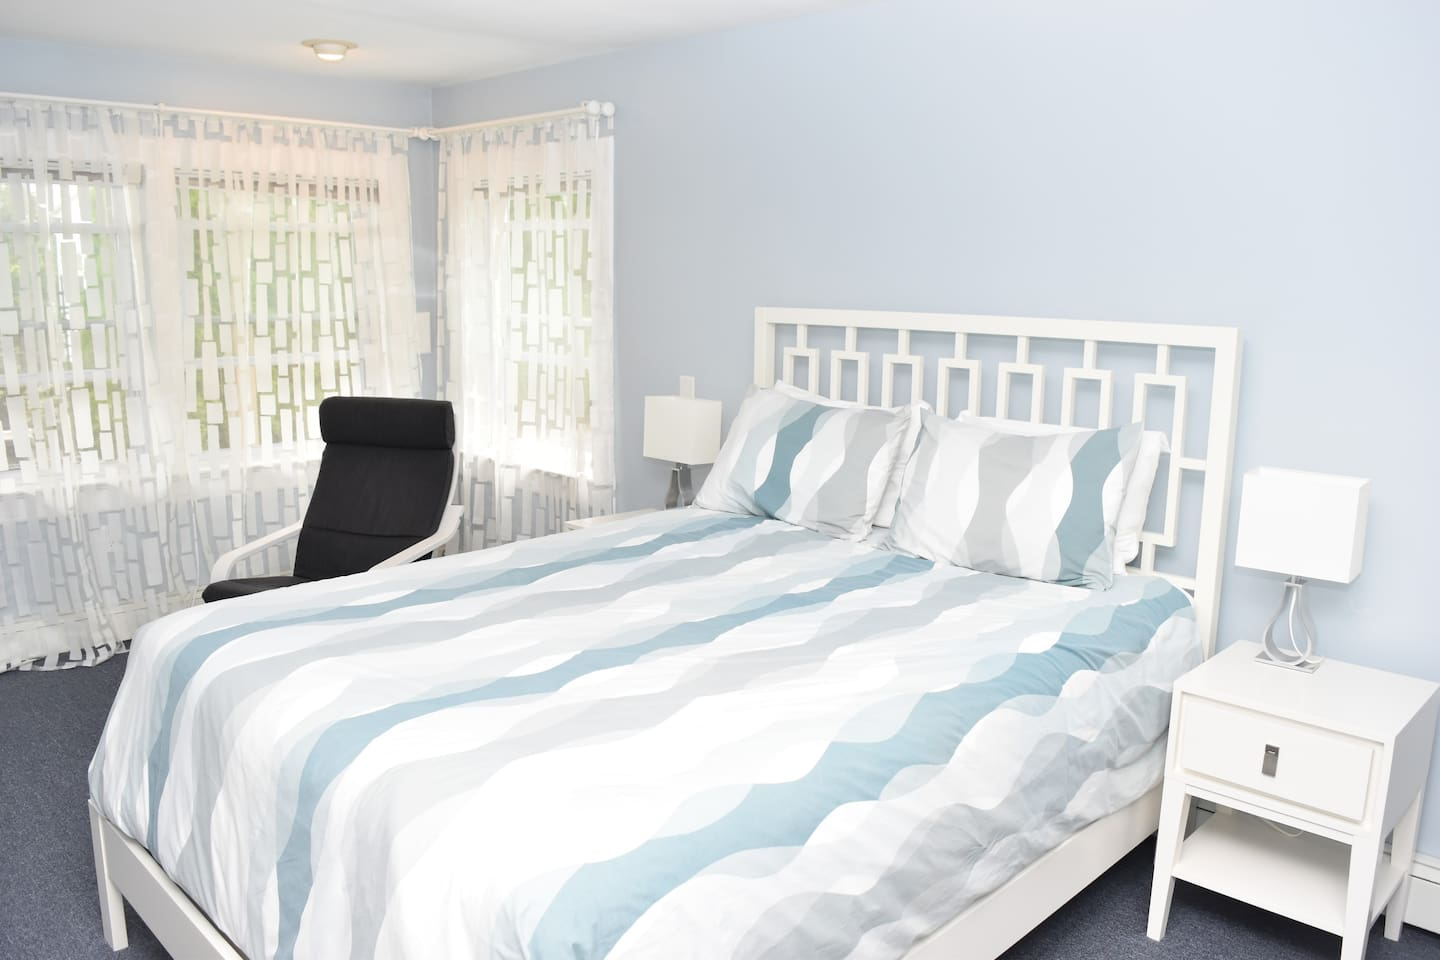 Guest Suite includes private entry, private bath with shower, walk-in closet with fridge, microwave, cups, glasses, knifes and forks, plates, hangers, umbrella, beach bag, AC (in the summer), electric fireplace, work desk, books and smart TV.